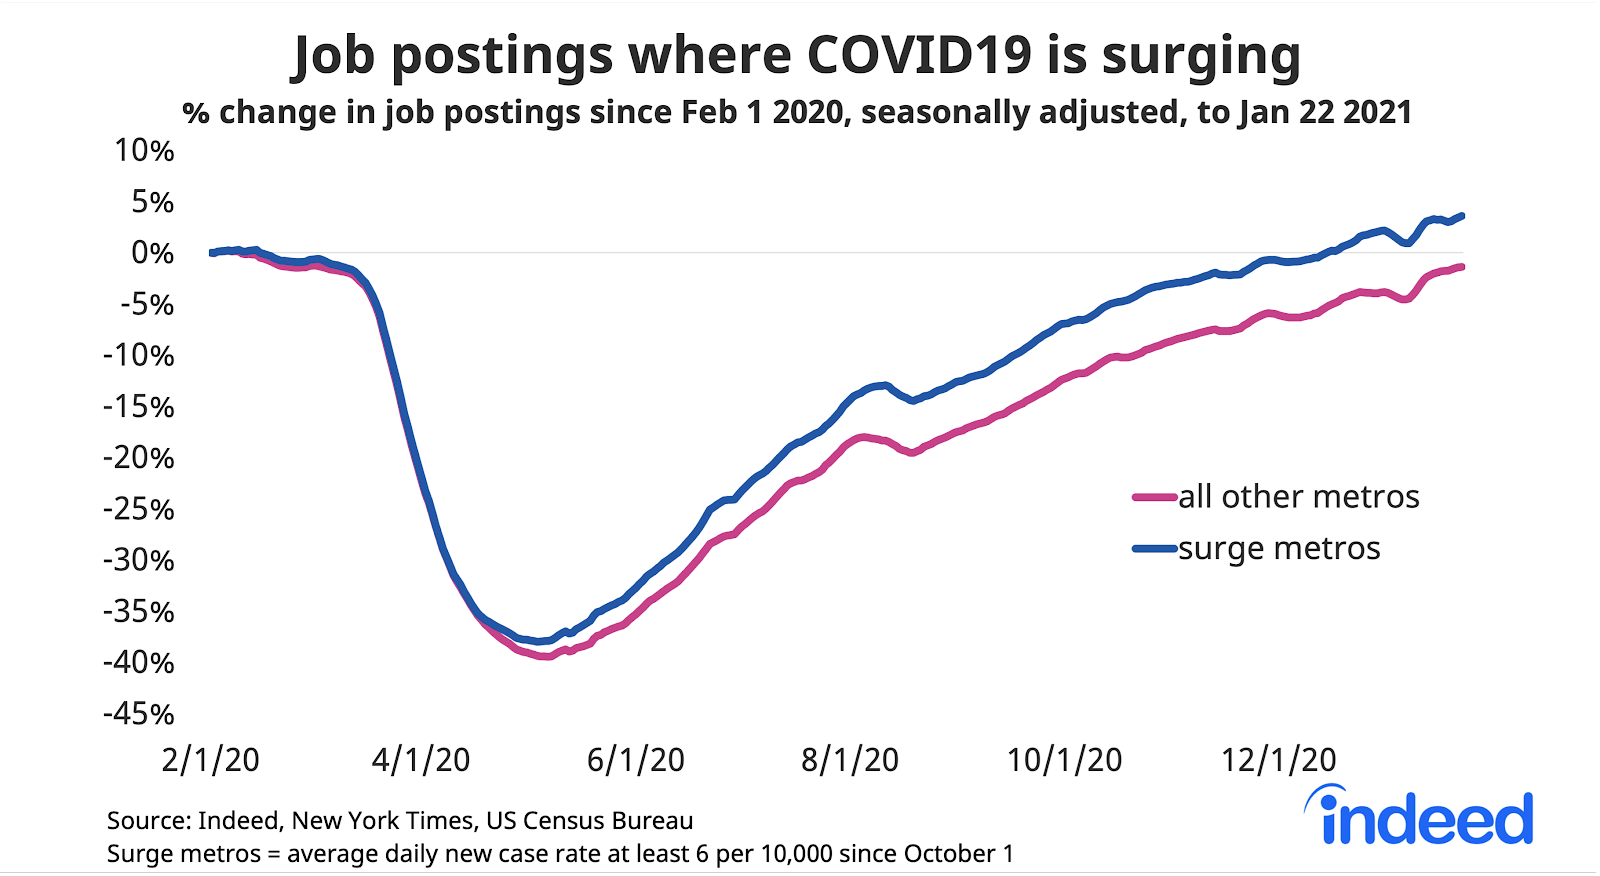 Line graph showing job postings where COVID-19 is surging